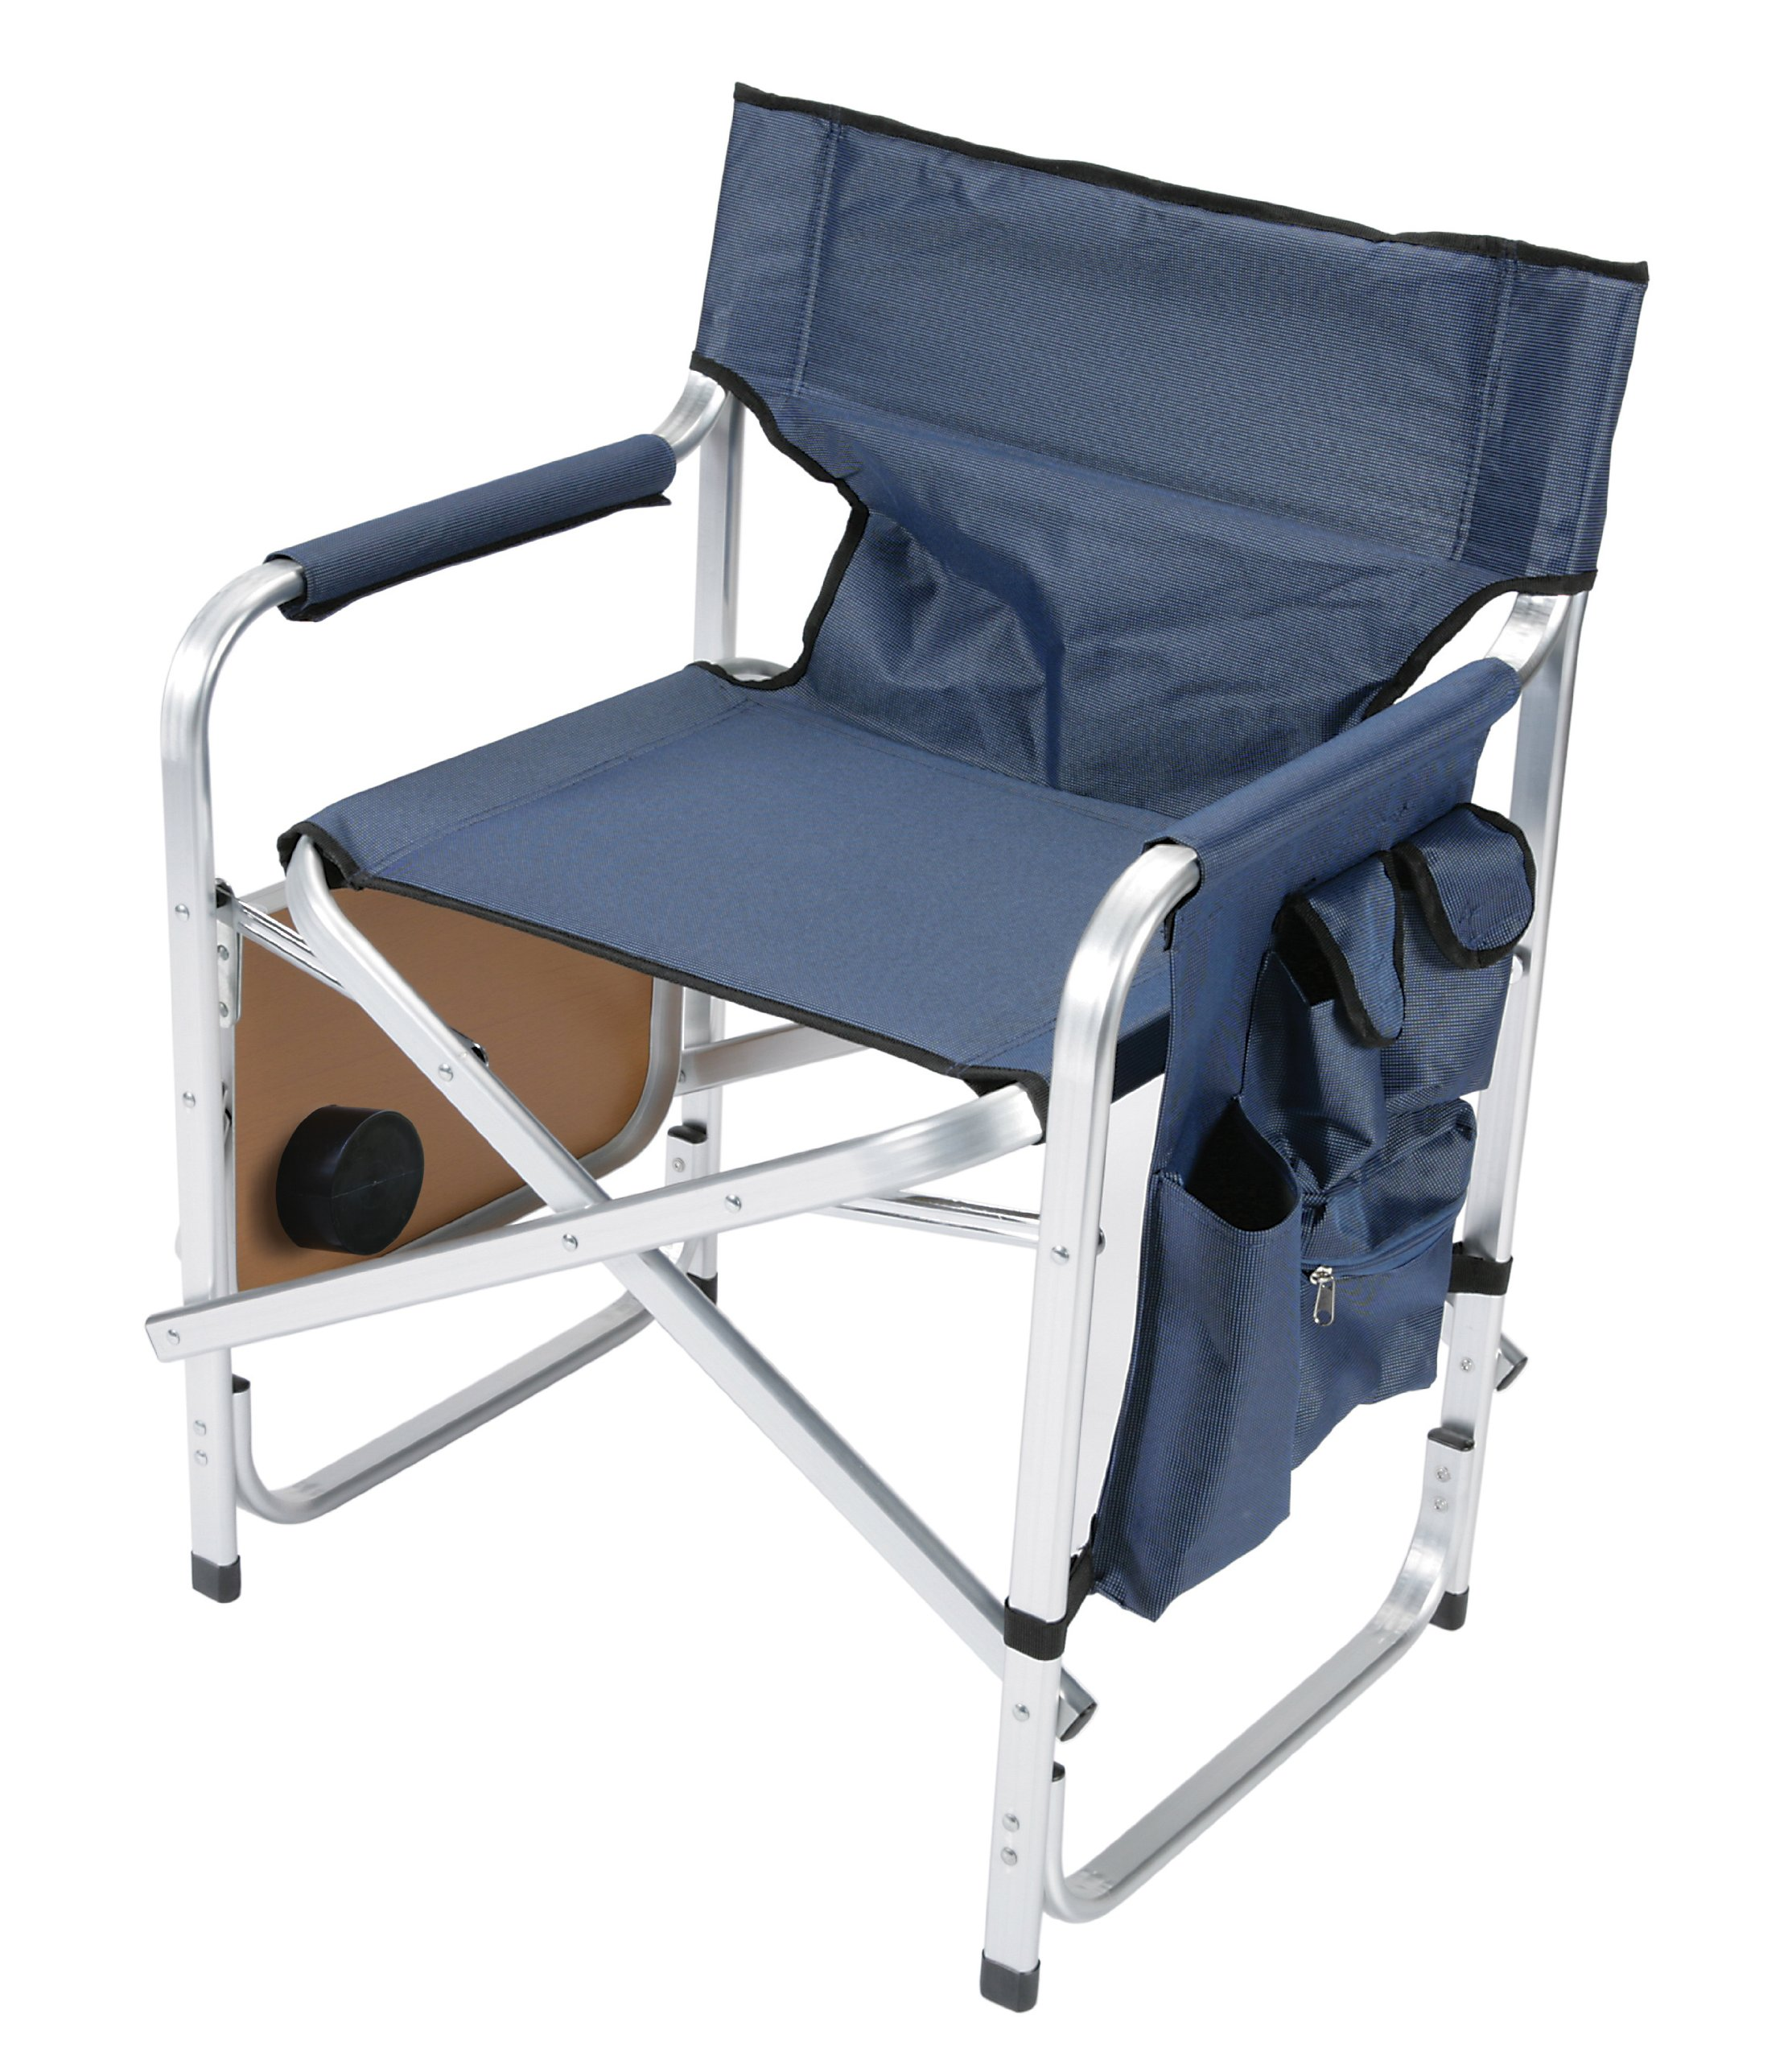 Faulkner Aluminum Director Chair with Folding Tray and Cup Holder, Blue by Faulkner